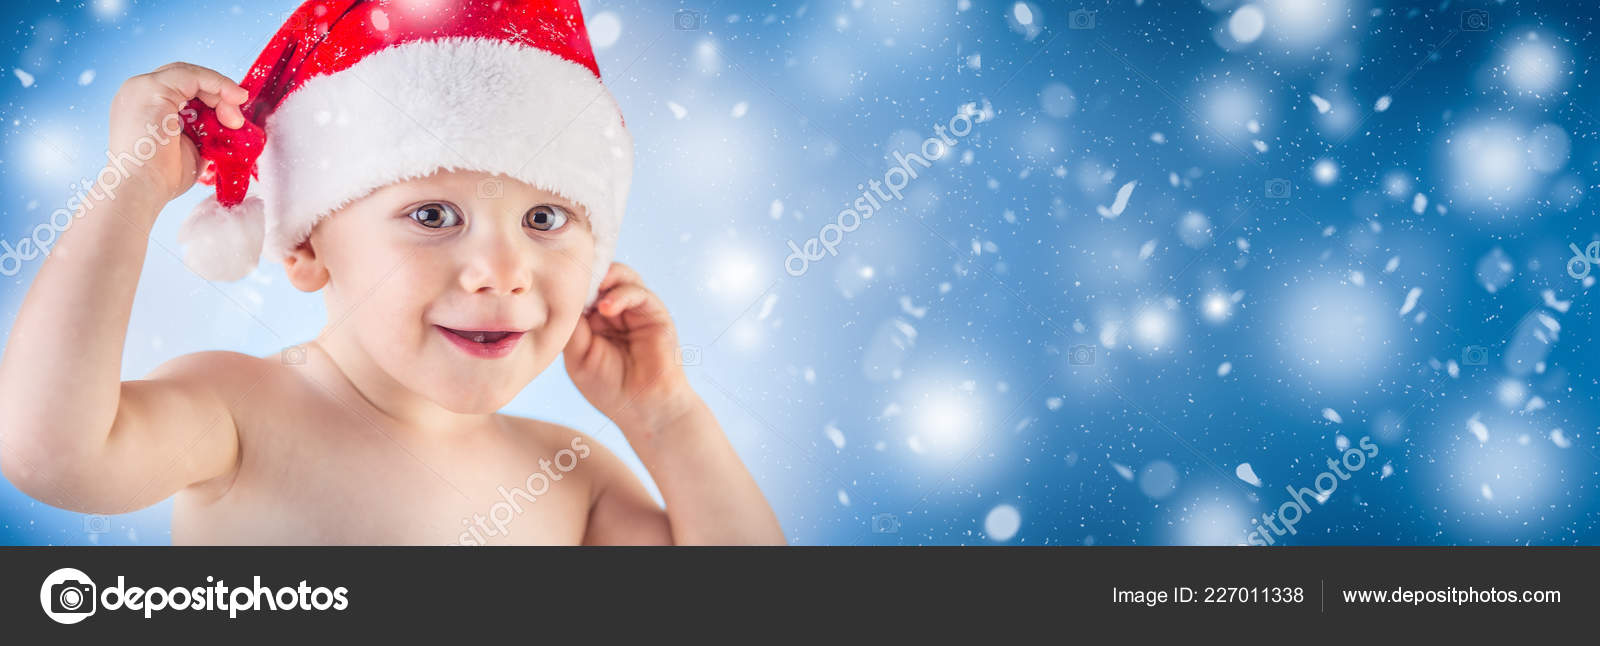 173c39c44e1 Cute Baby Boy Christmas Cap Abstract Snowy Panoramic Banner — Stock Photo